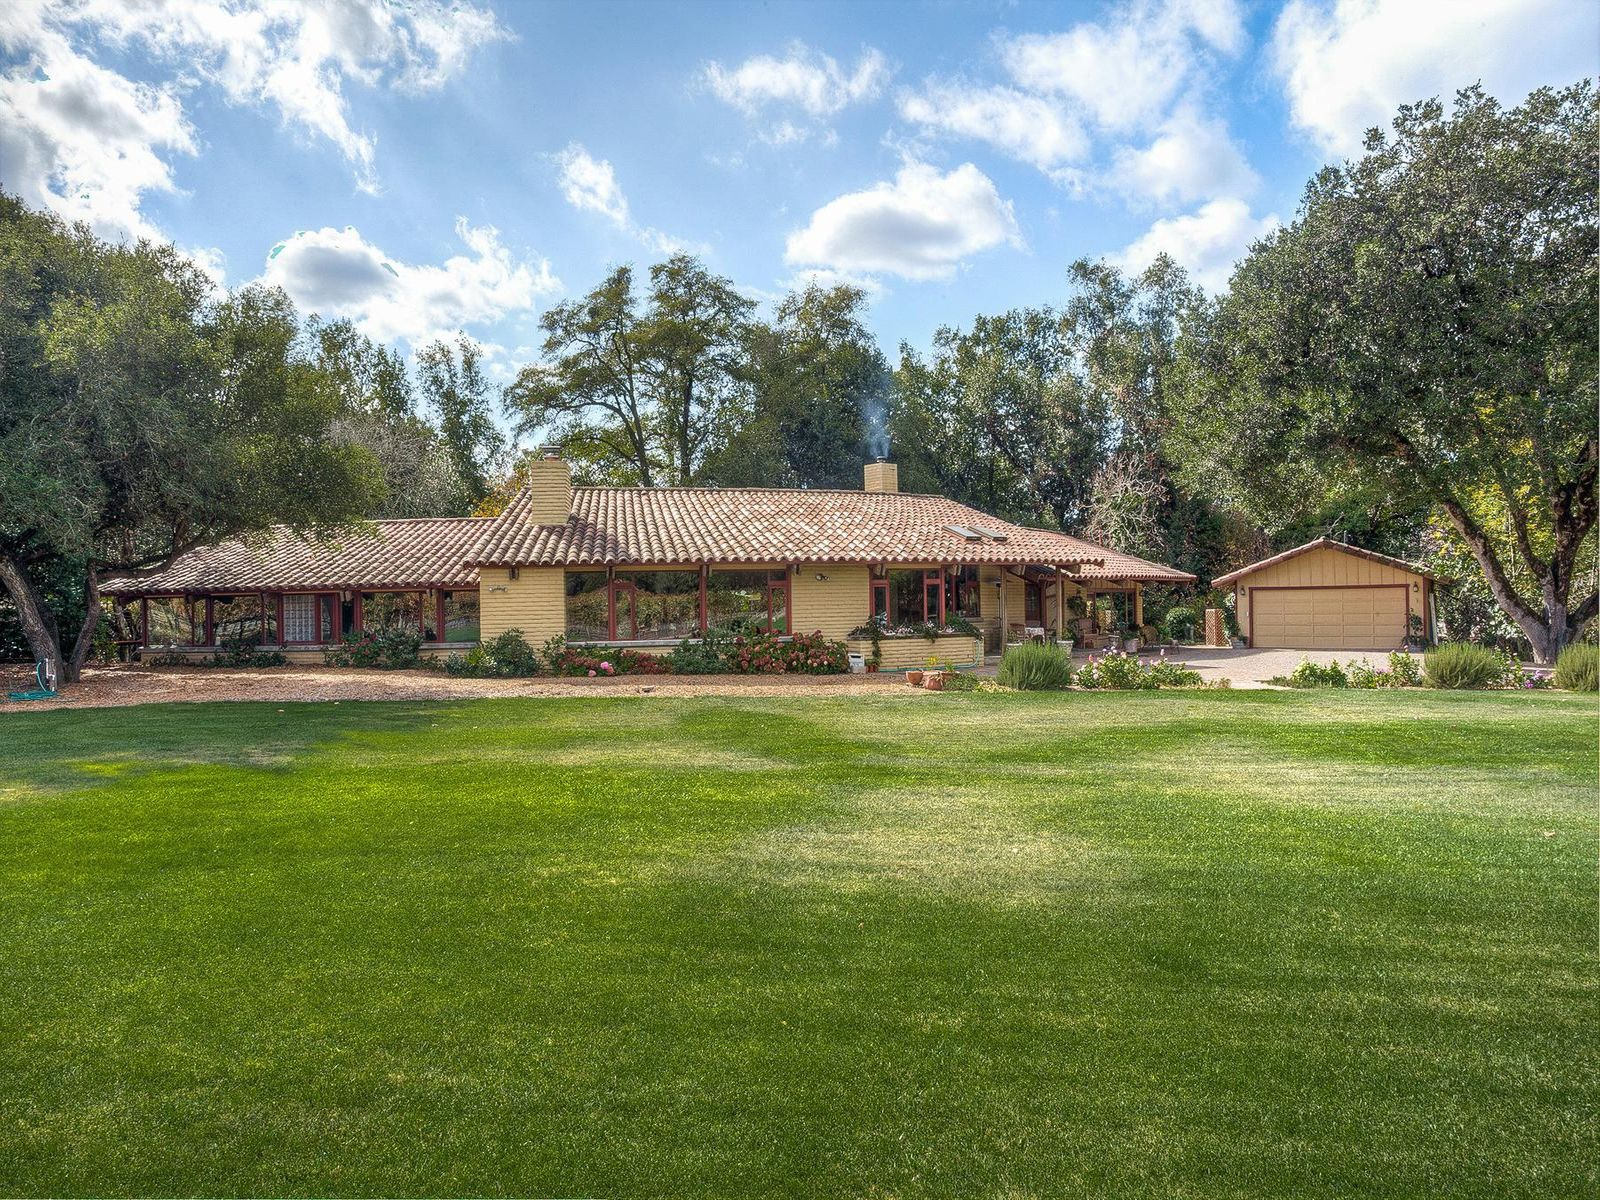 Custom designed adobe brick home